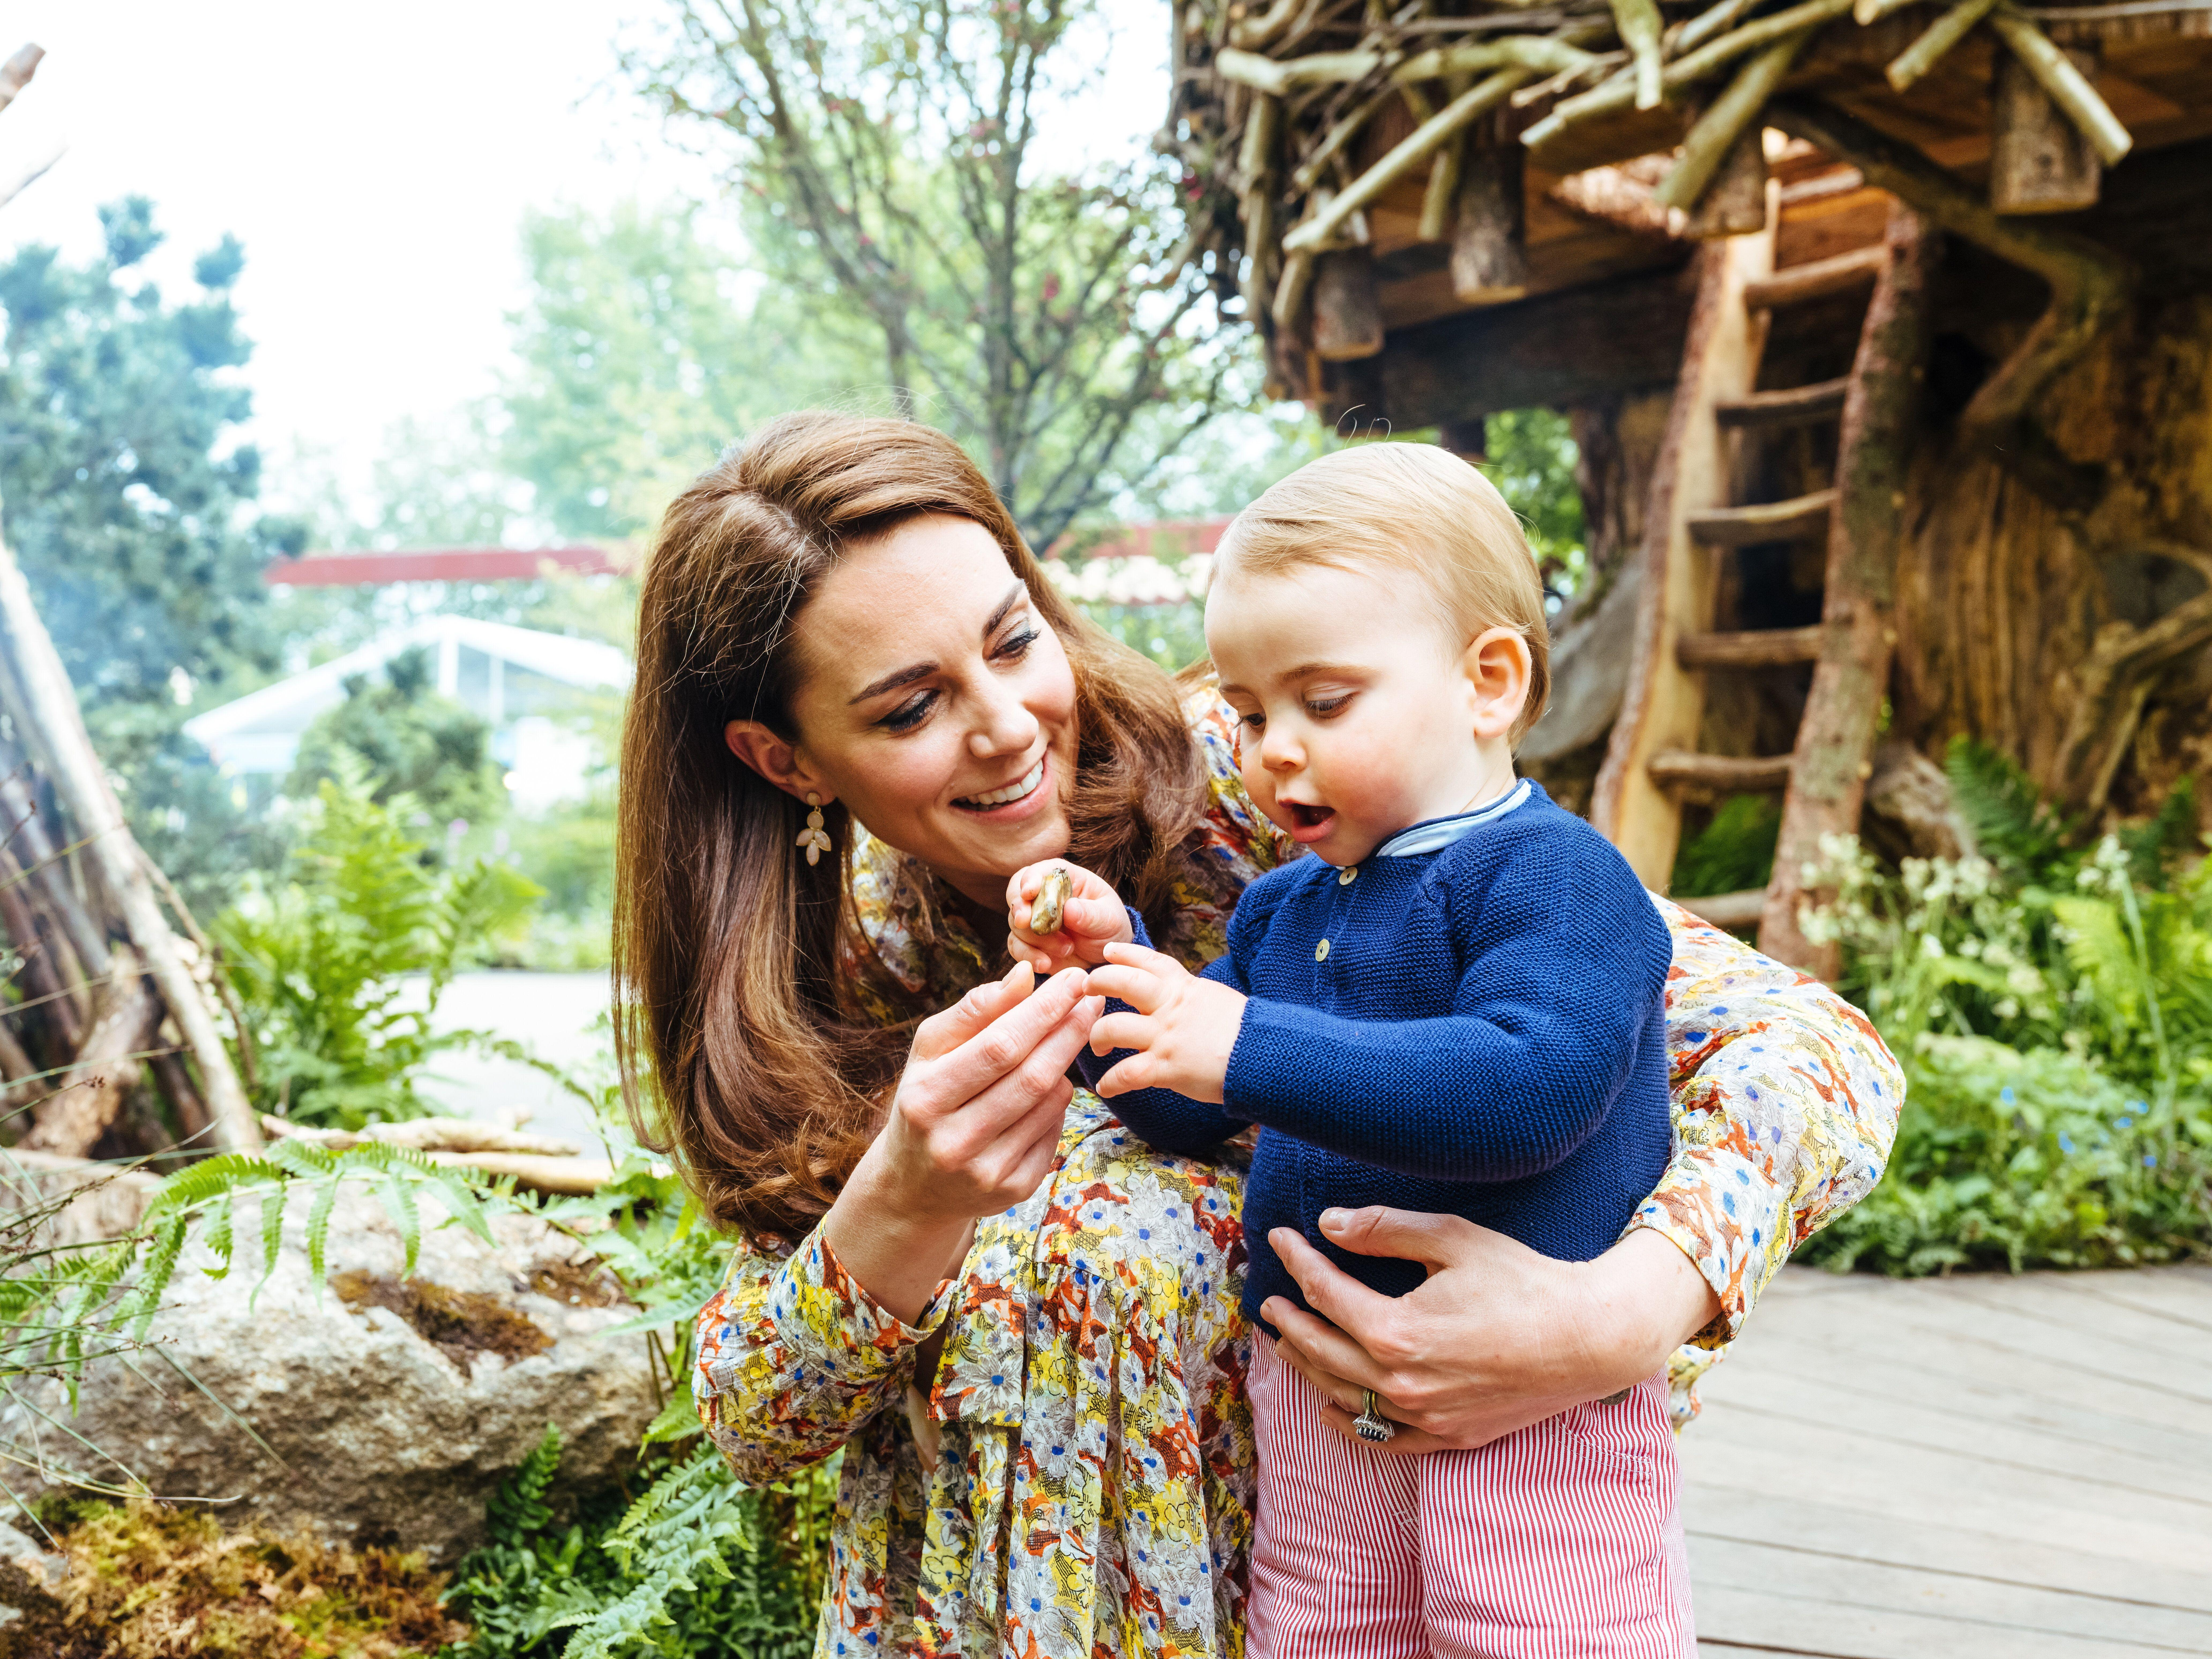 The Duchess of Cambridge with her youngest child Prince Louis in her Chelsea Flower Show garden [Photo: Matt Porteous]